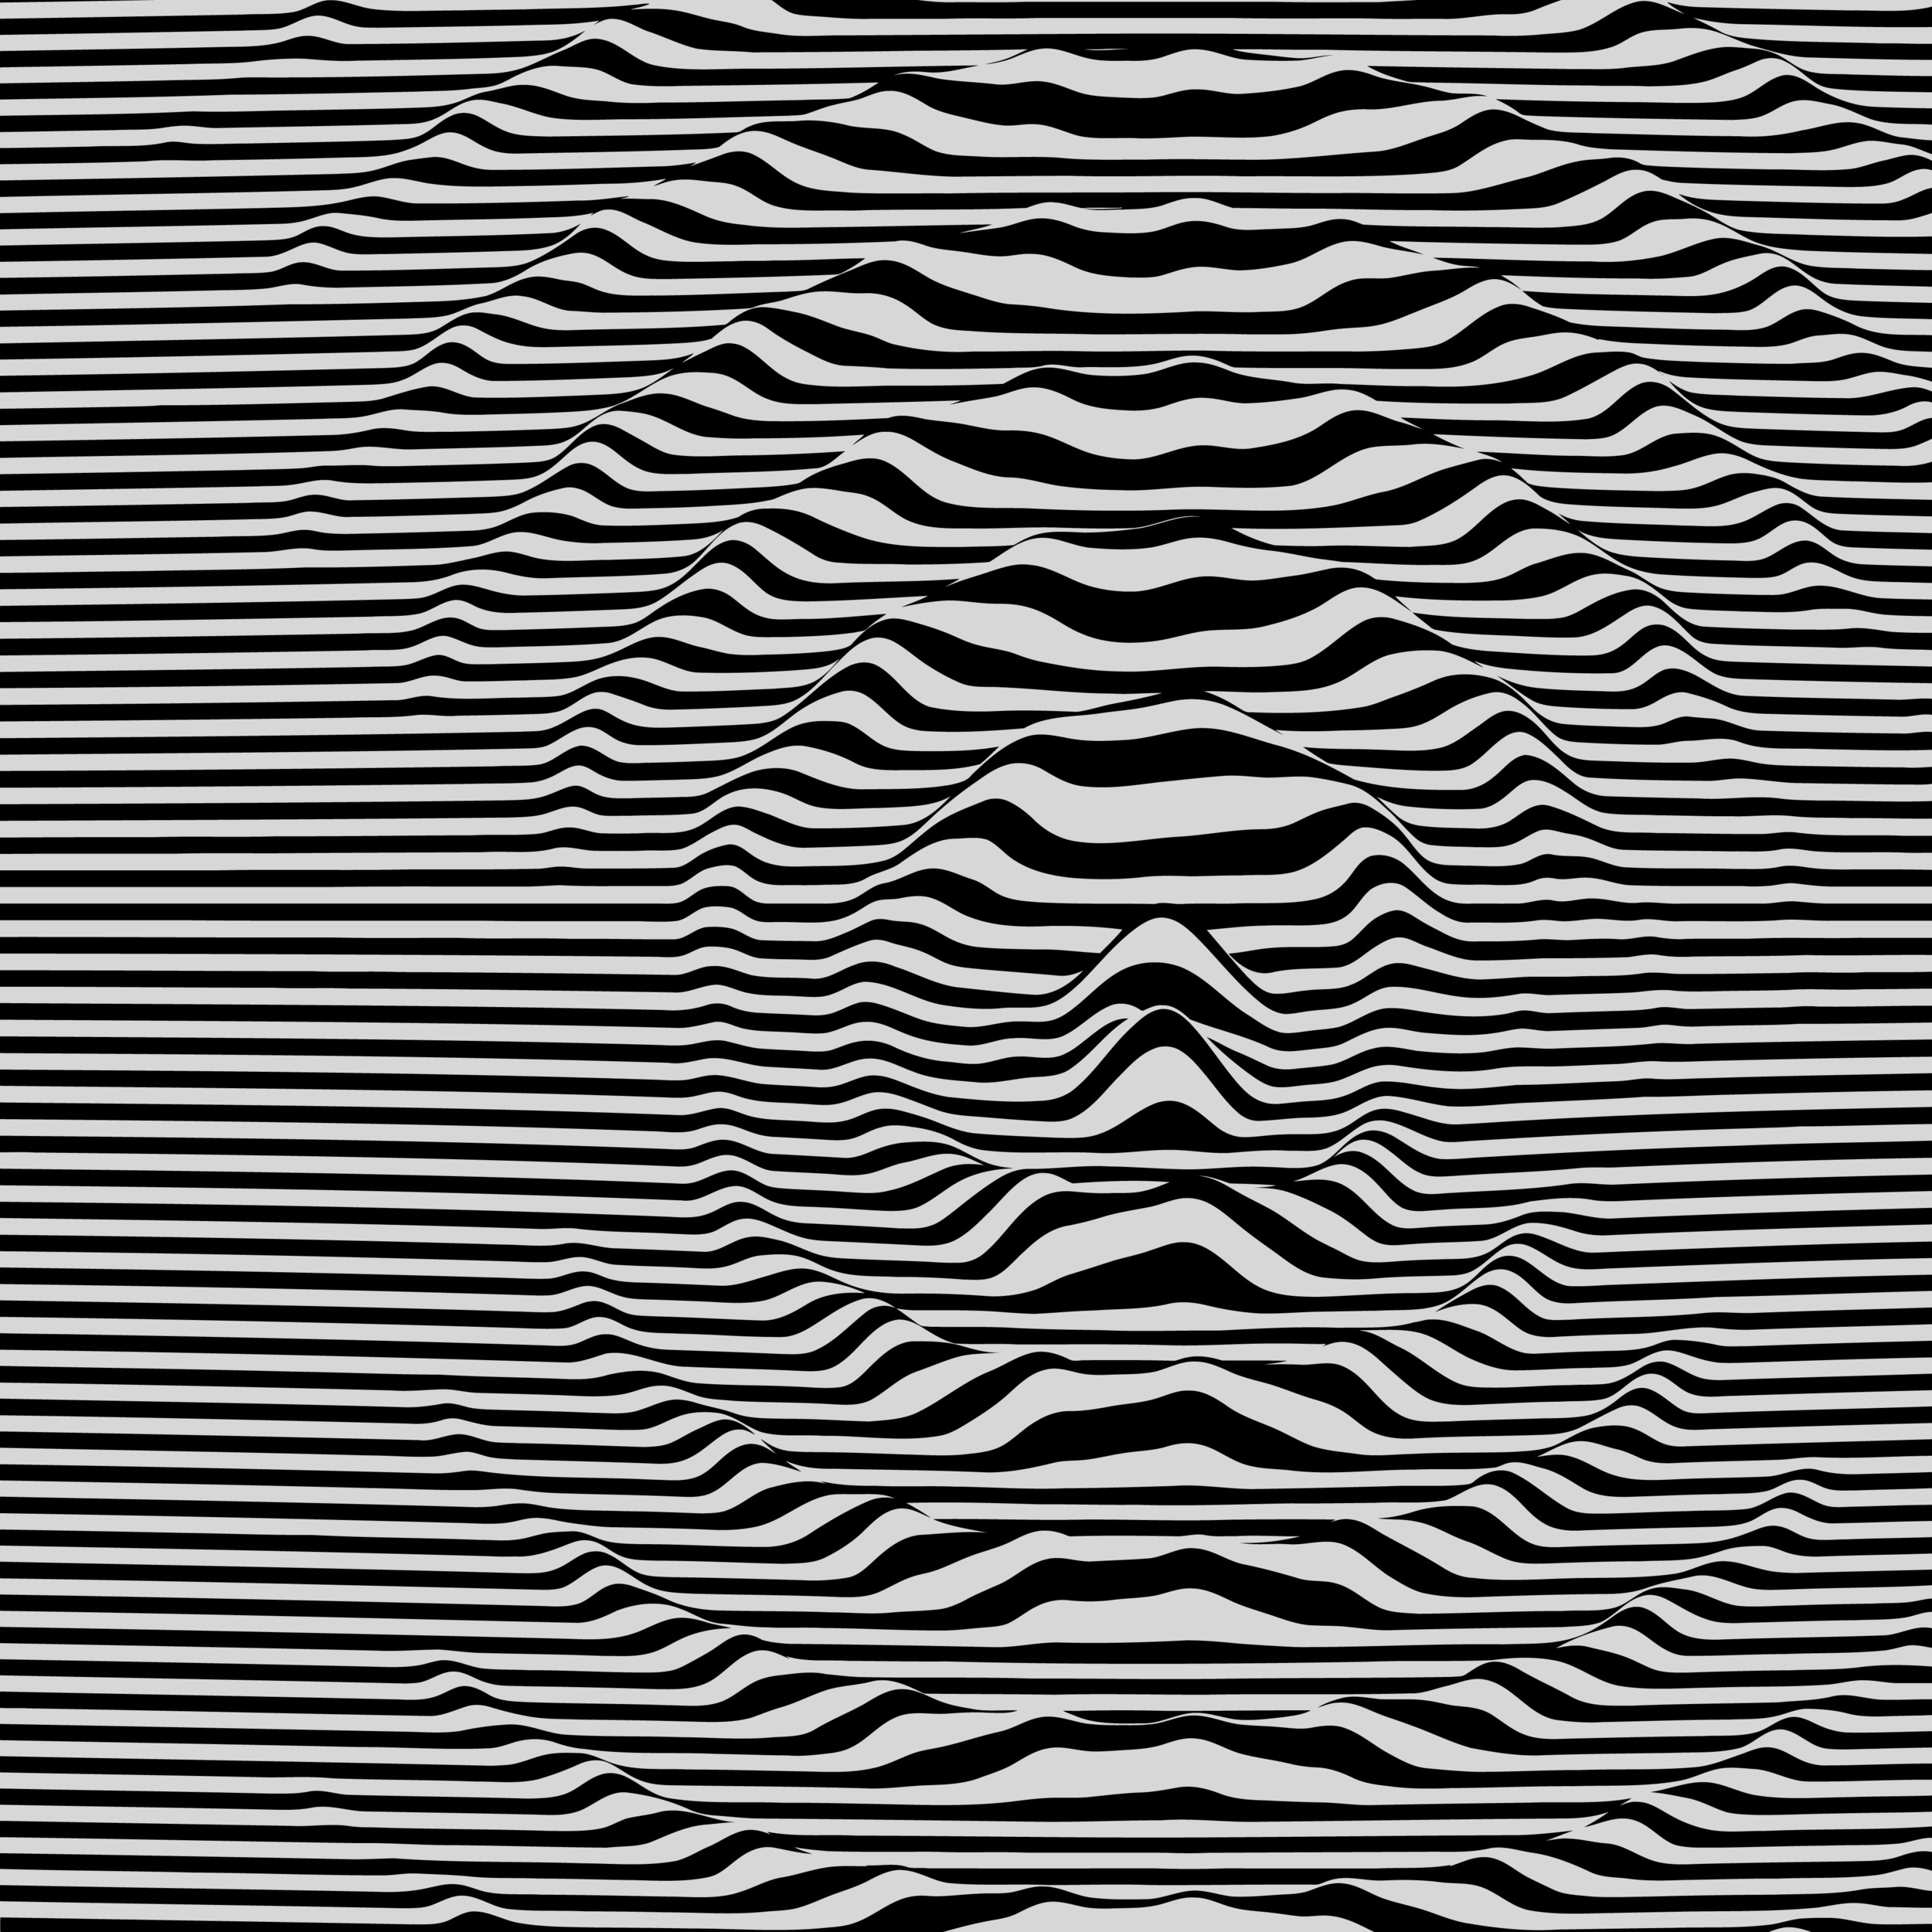 Sound waves.jpg